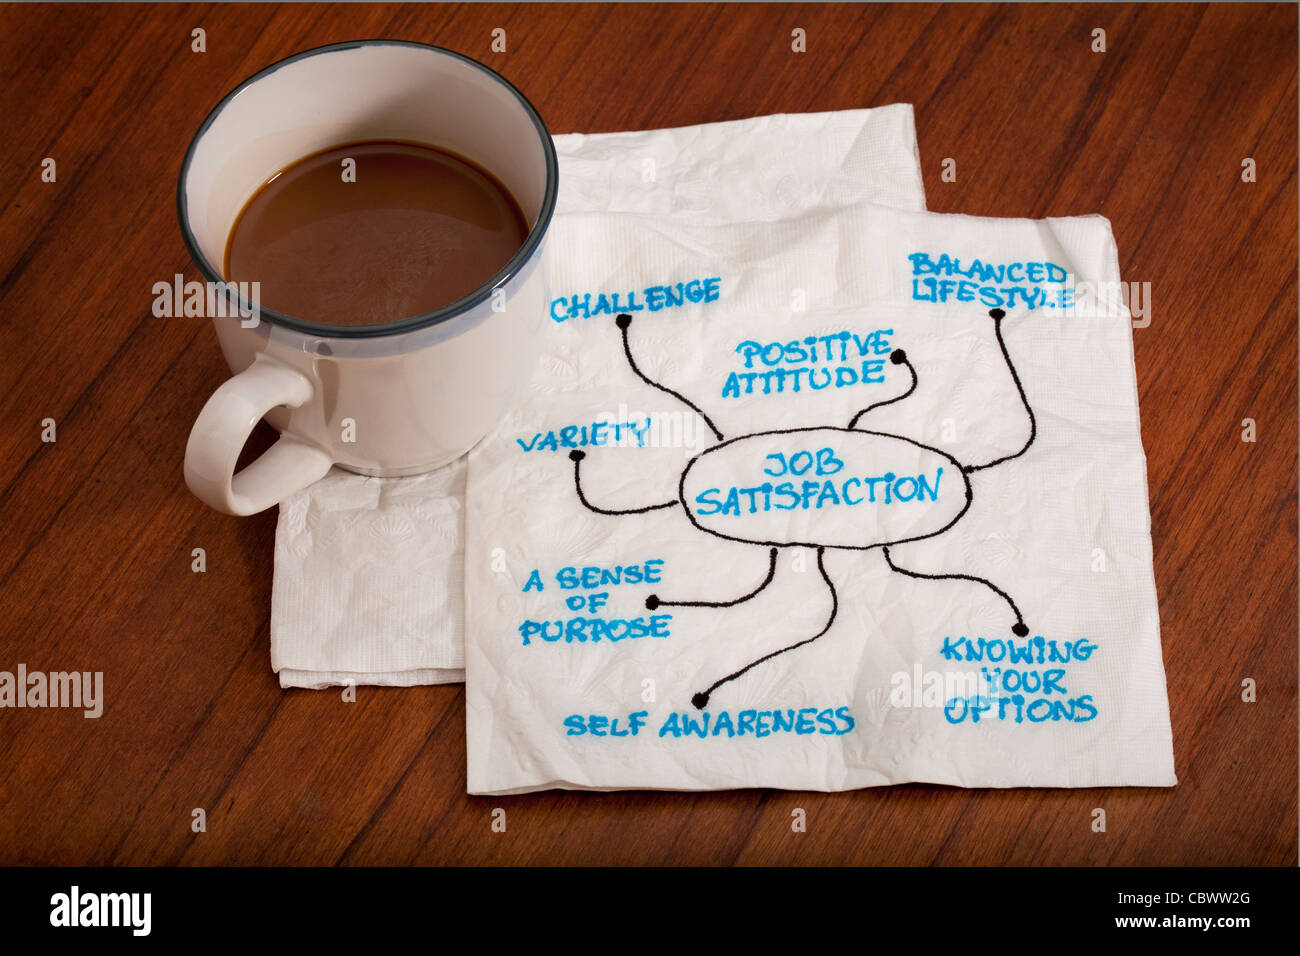 job satisfaction concept - napkin doodle with a coffee cup on wooden table - Stock Image